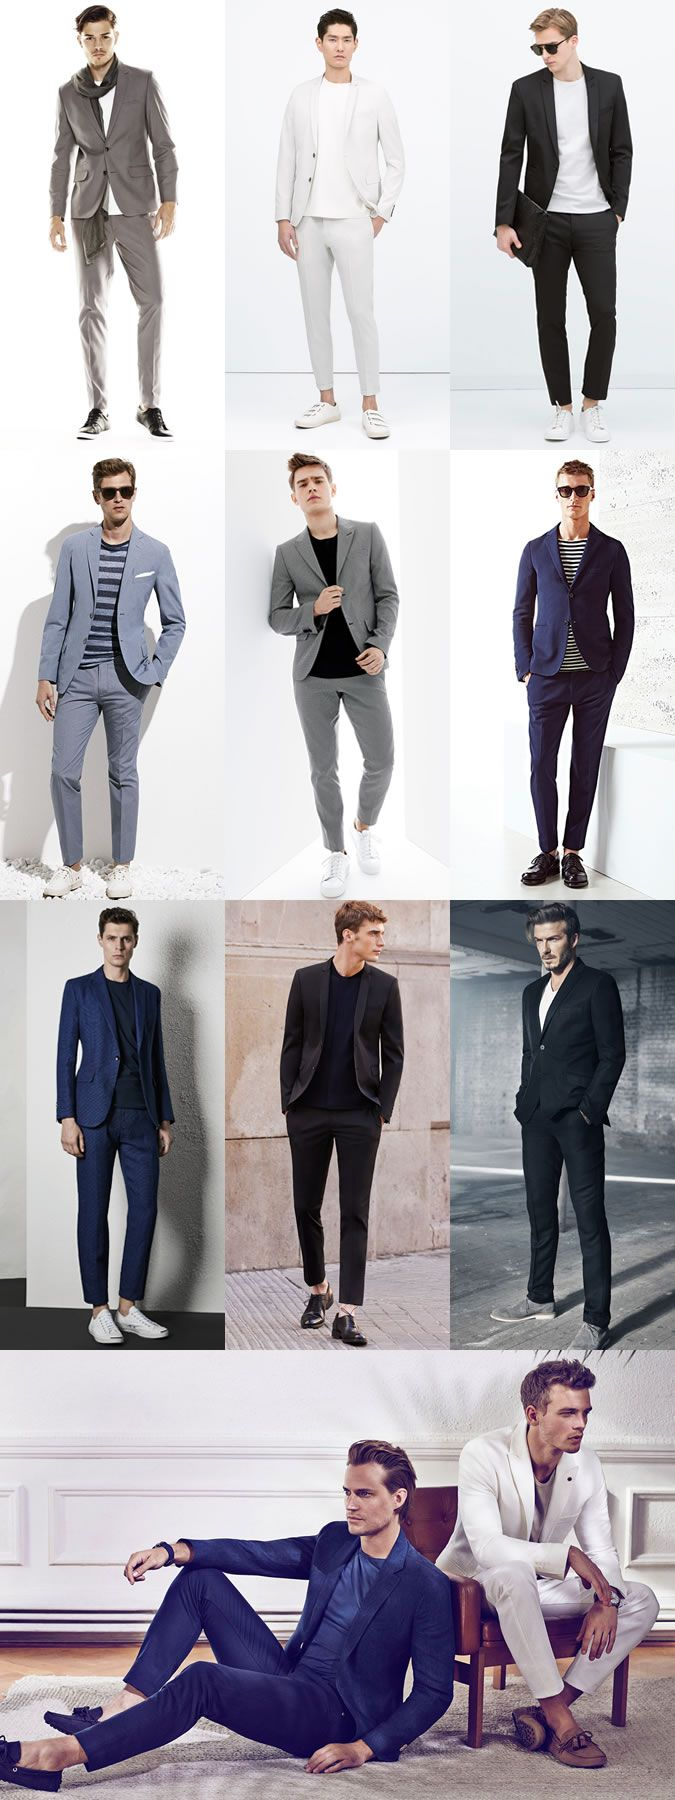 Men's Suits and T-Shirts Combinations - Outfit Inspiration Lookbook